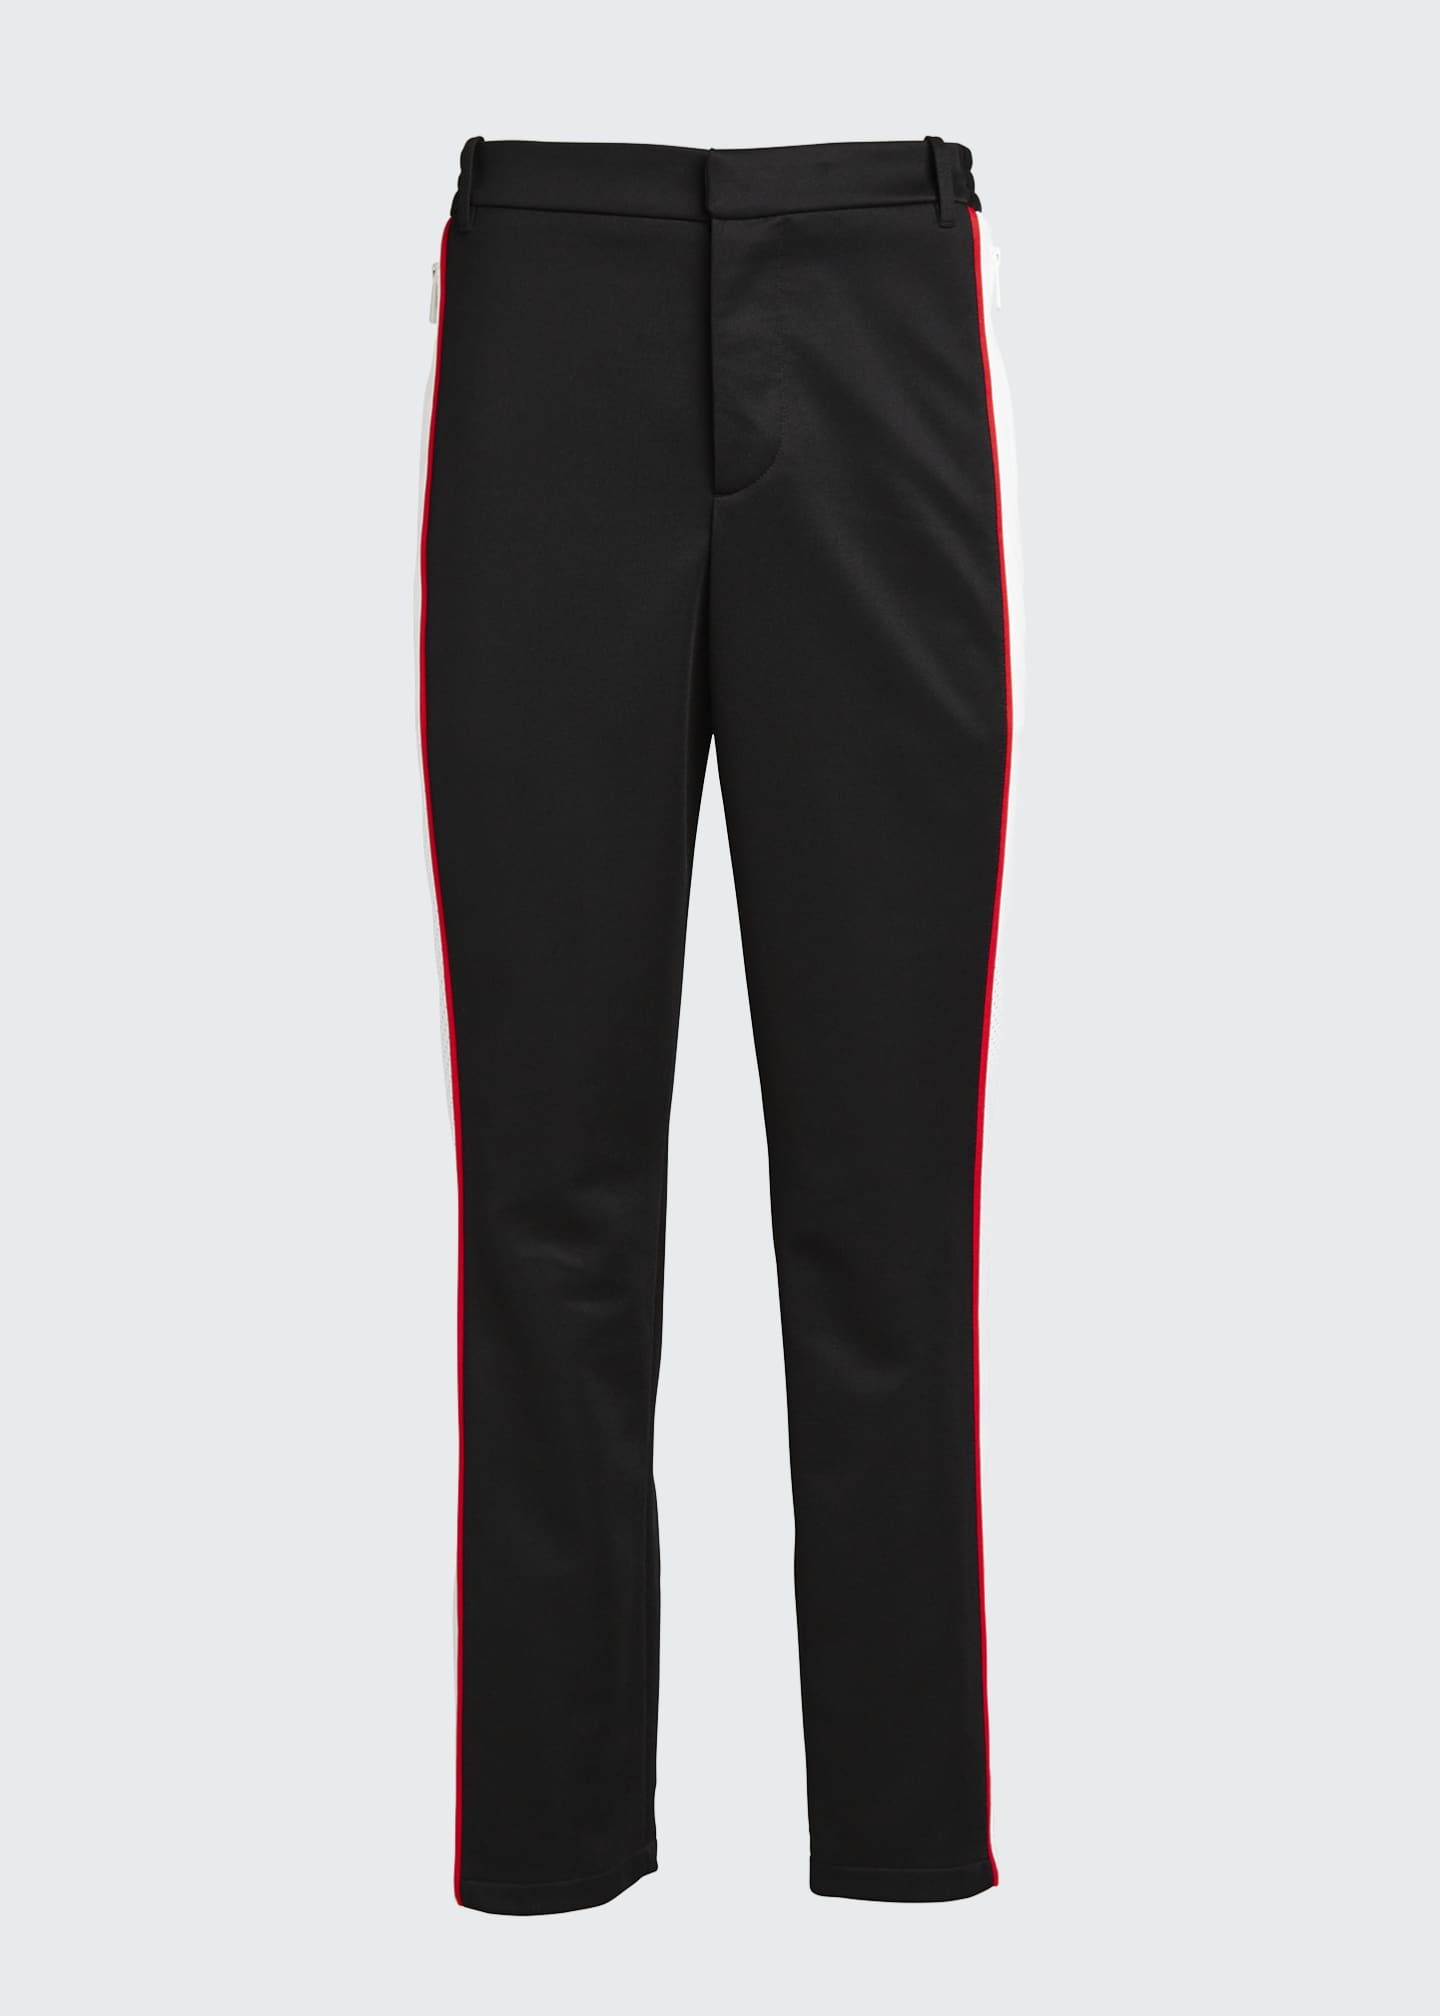 Image 5 of 5: Men's Side-Stripe Track Pants